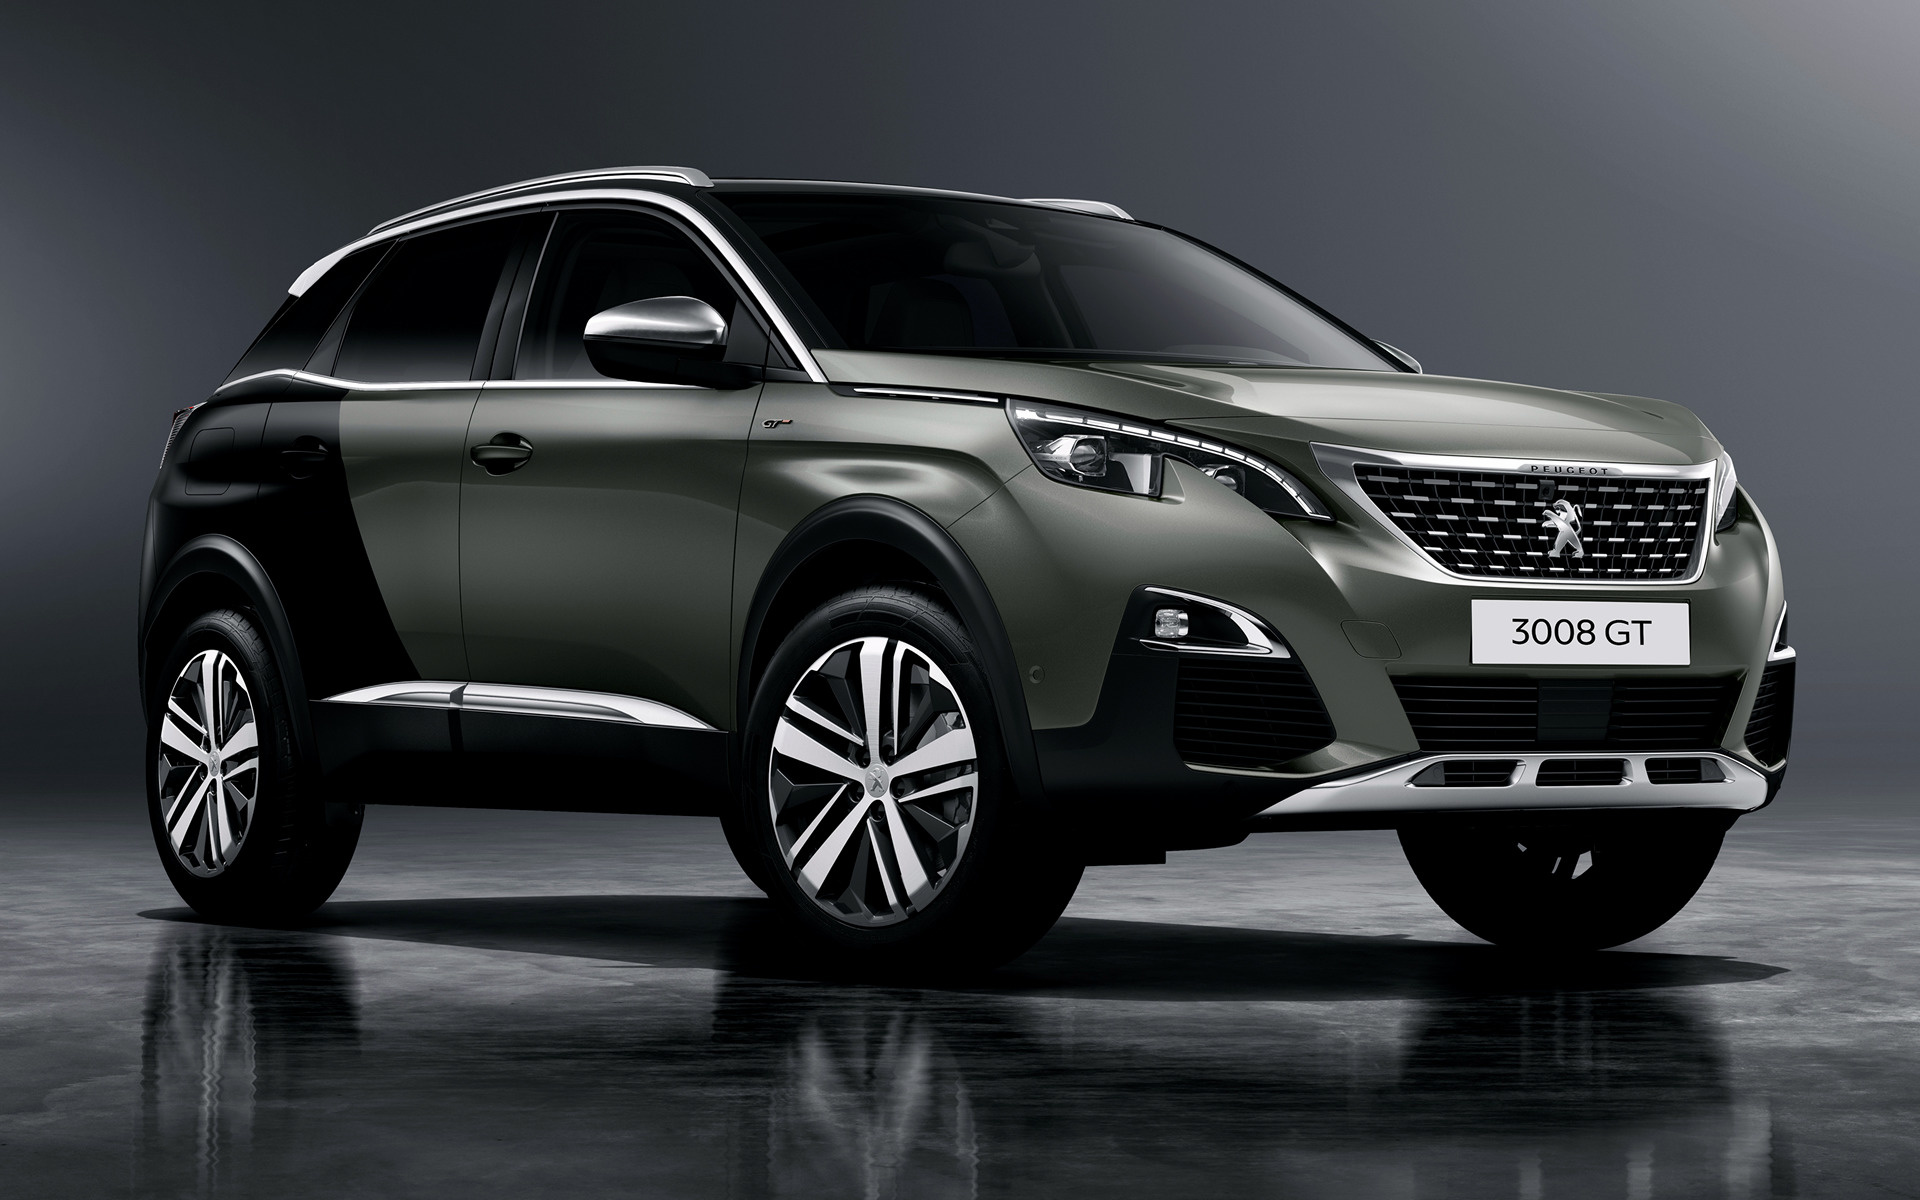 2016 Peugeot 3008 GT - Wallpapers and HD Images | Car Pixel